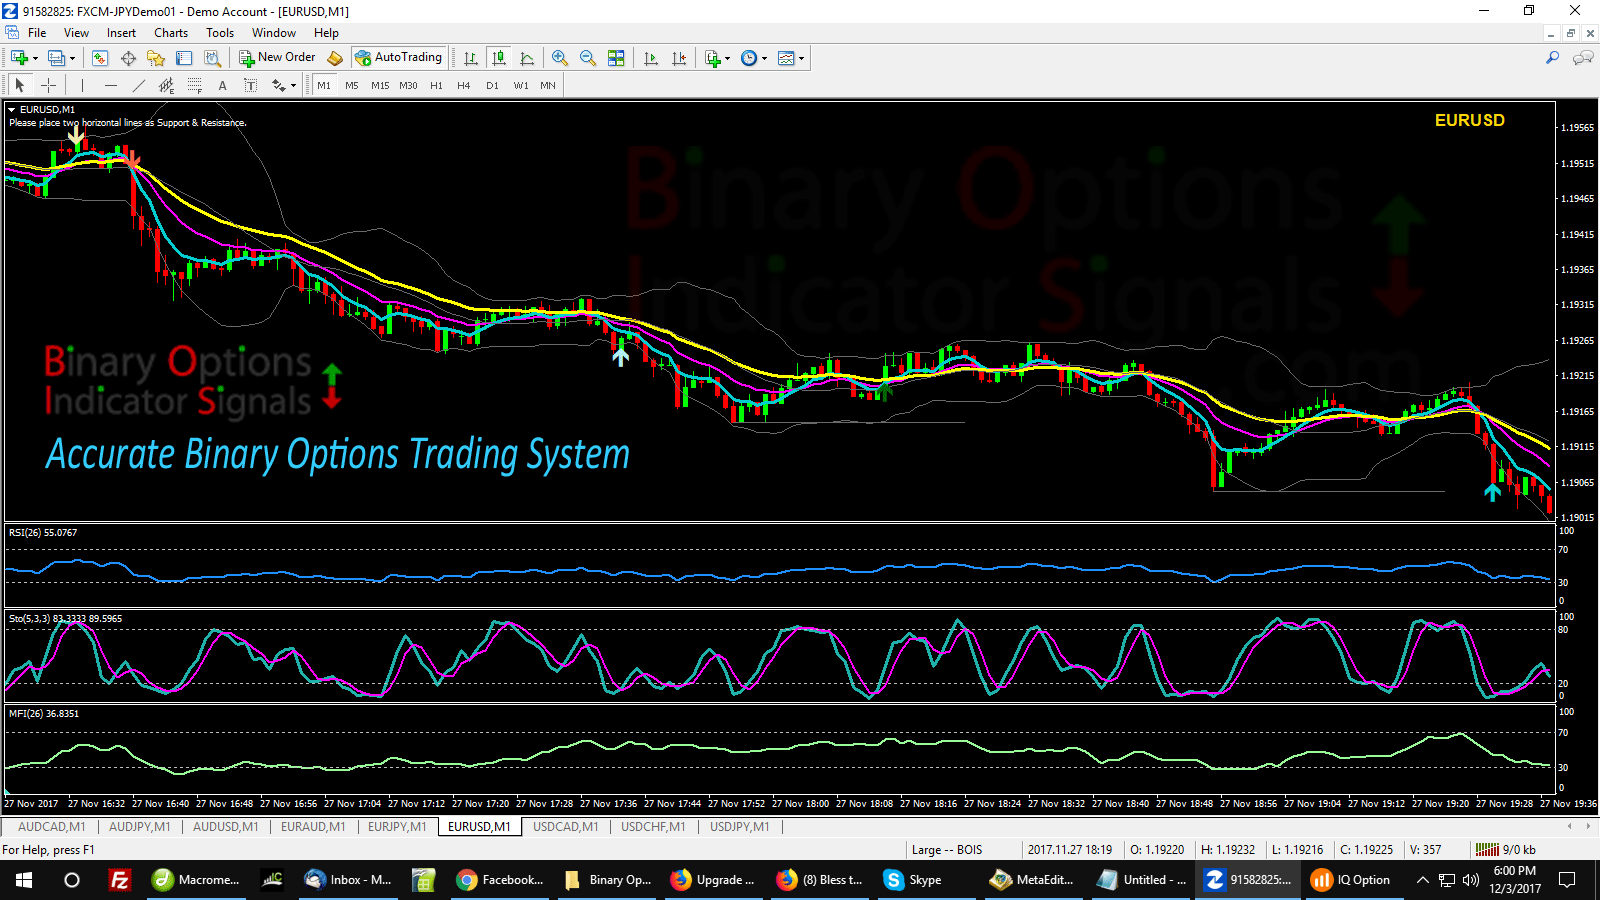 Binary options signal indicator